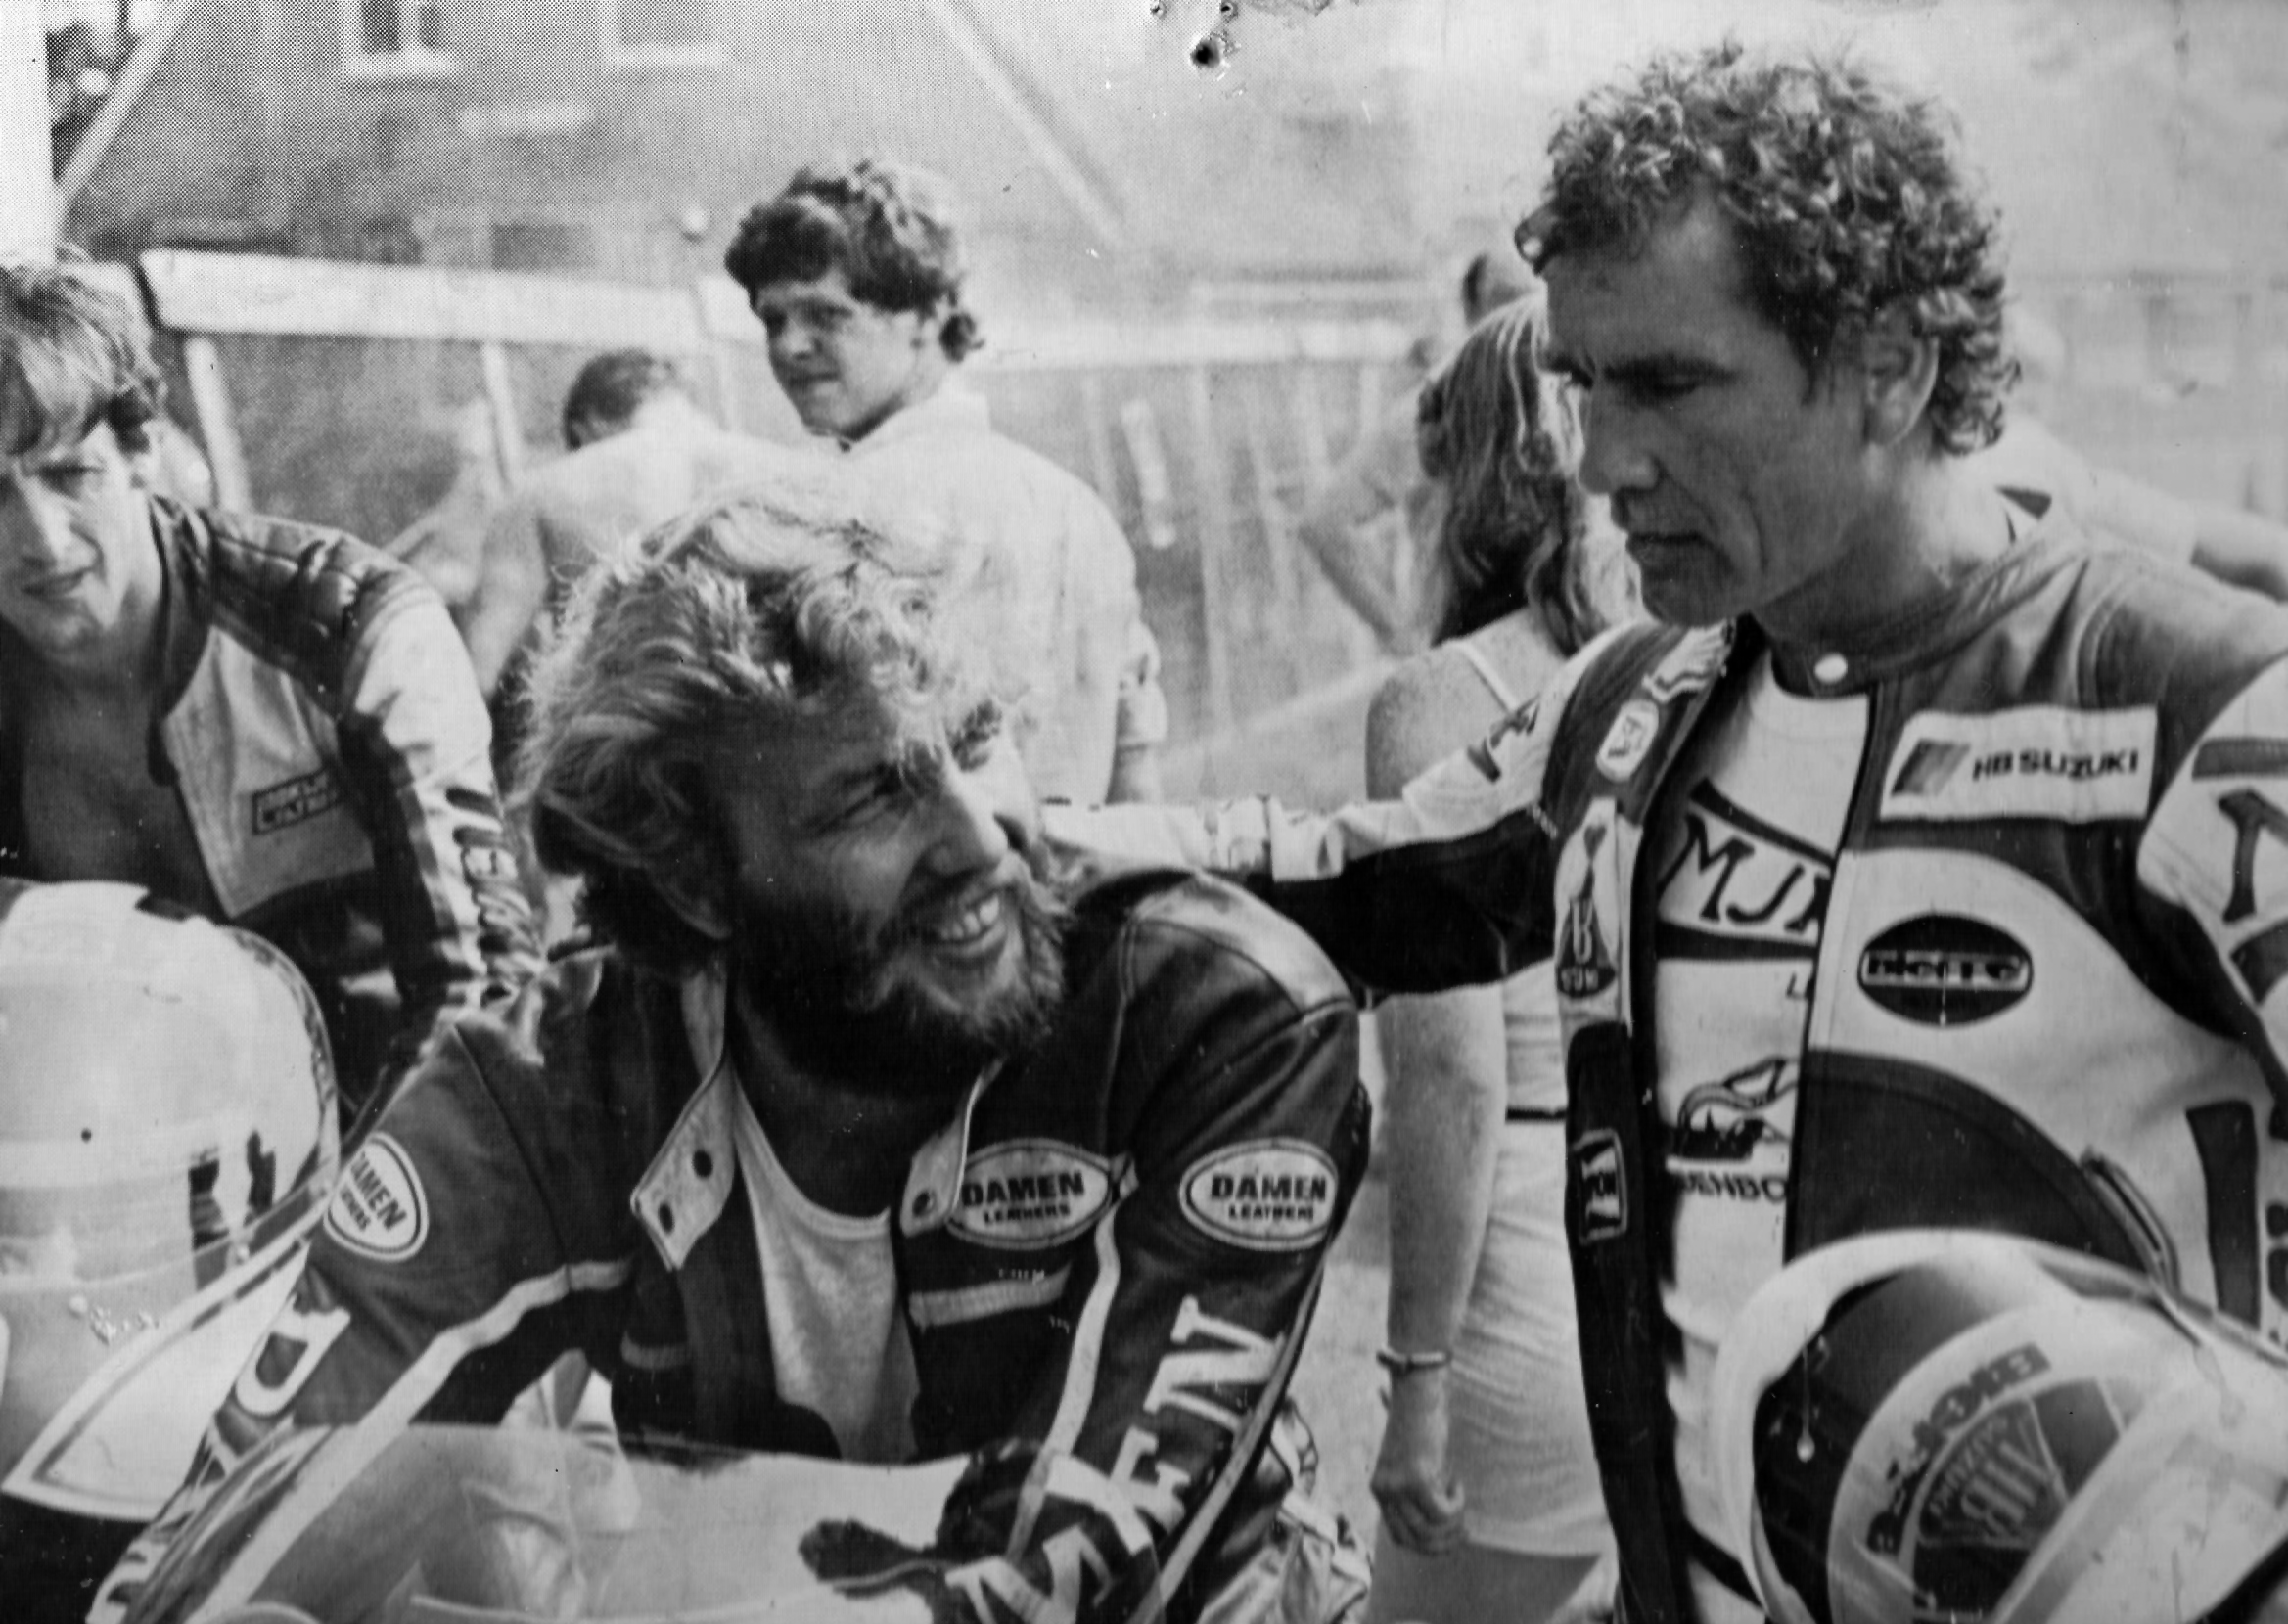 Dutch road racing star at the time: Heine Lentink